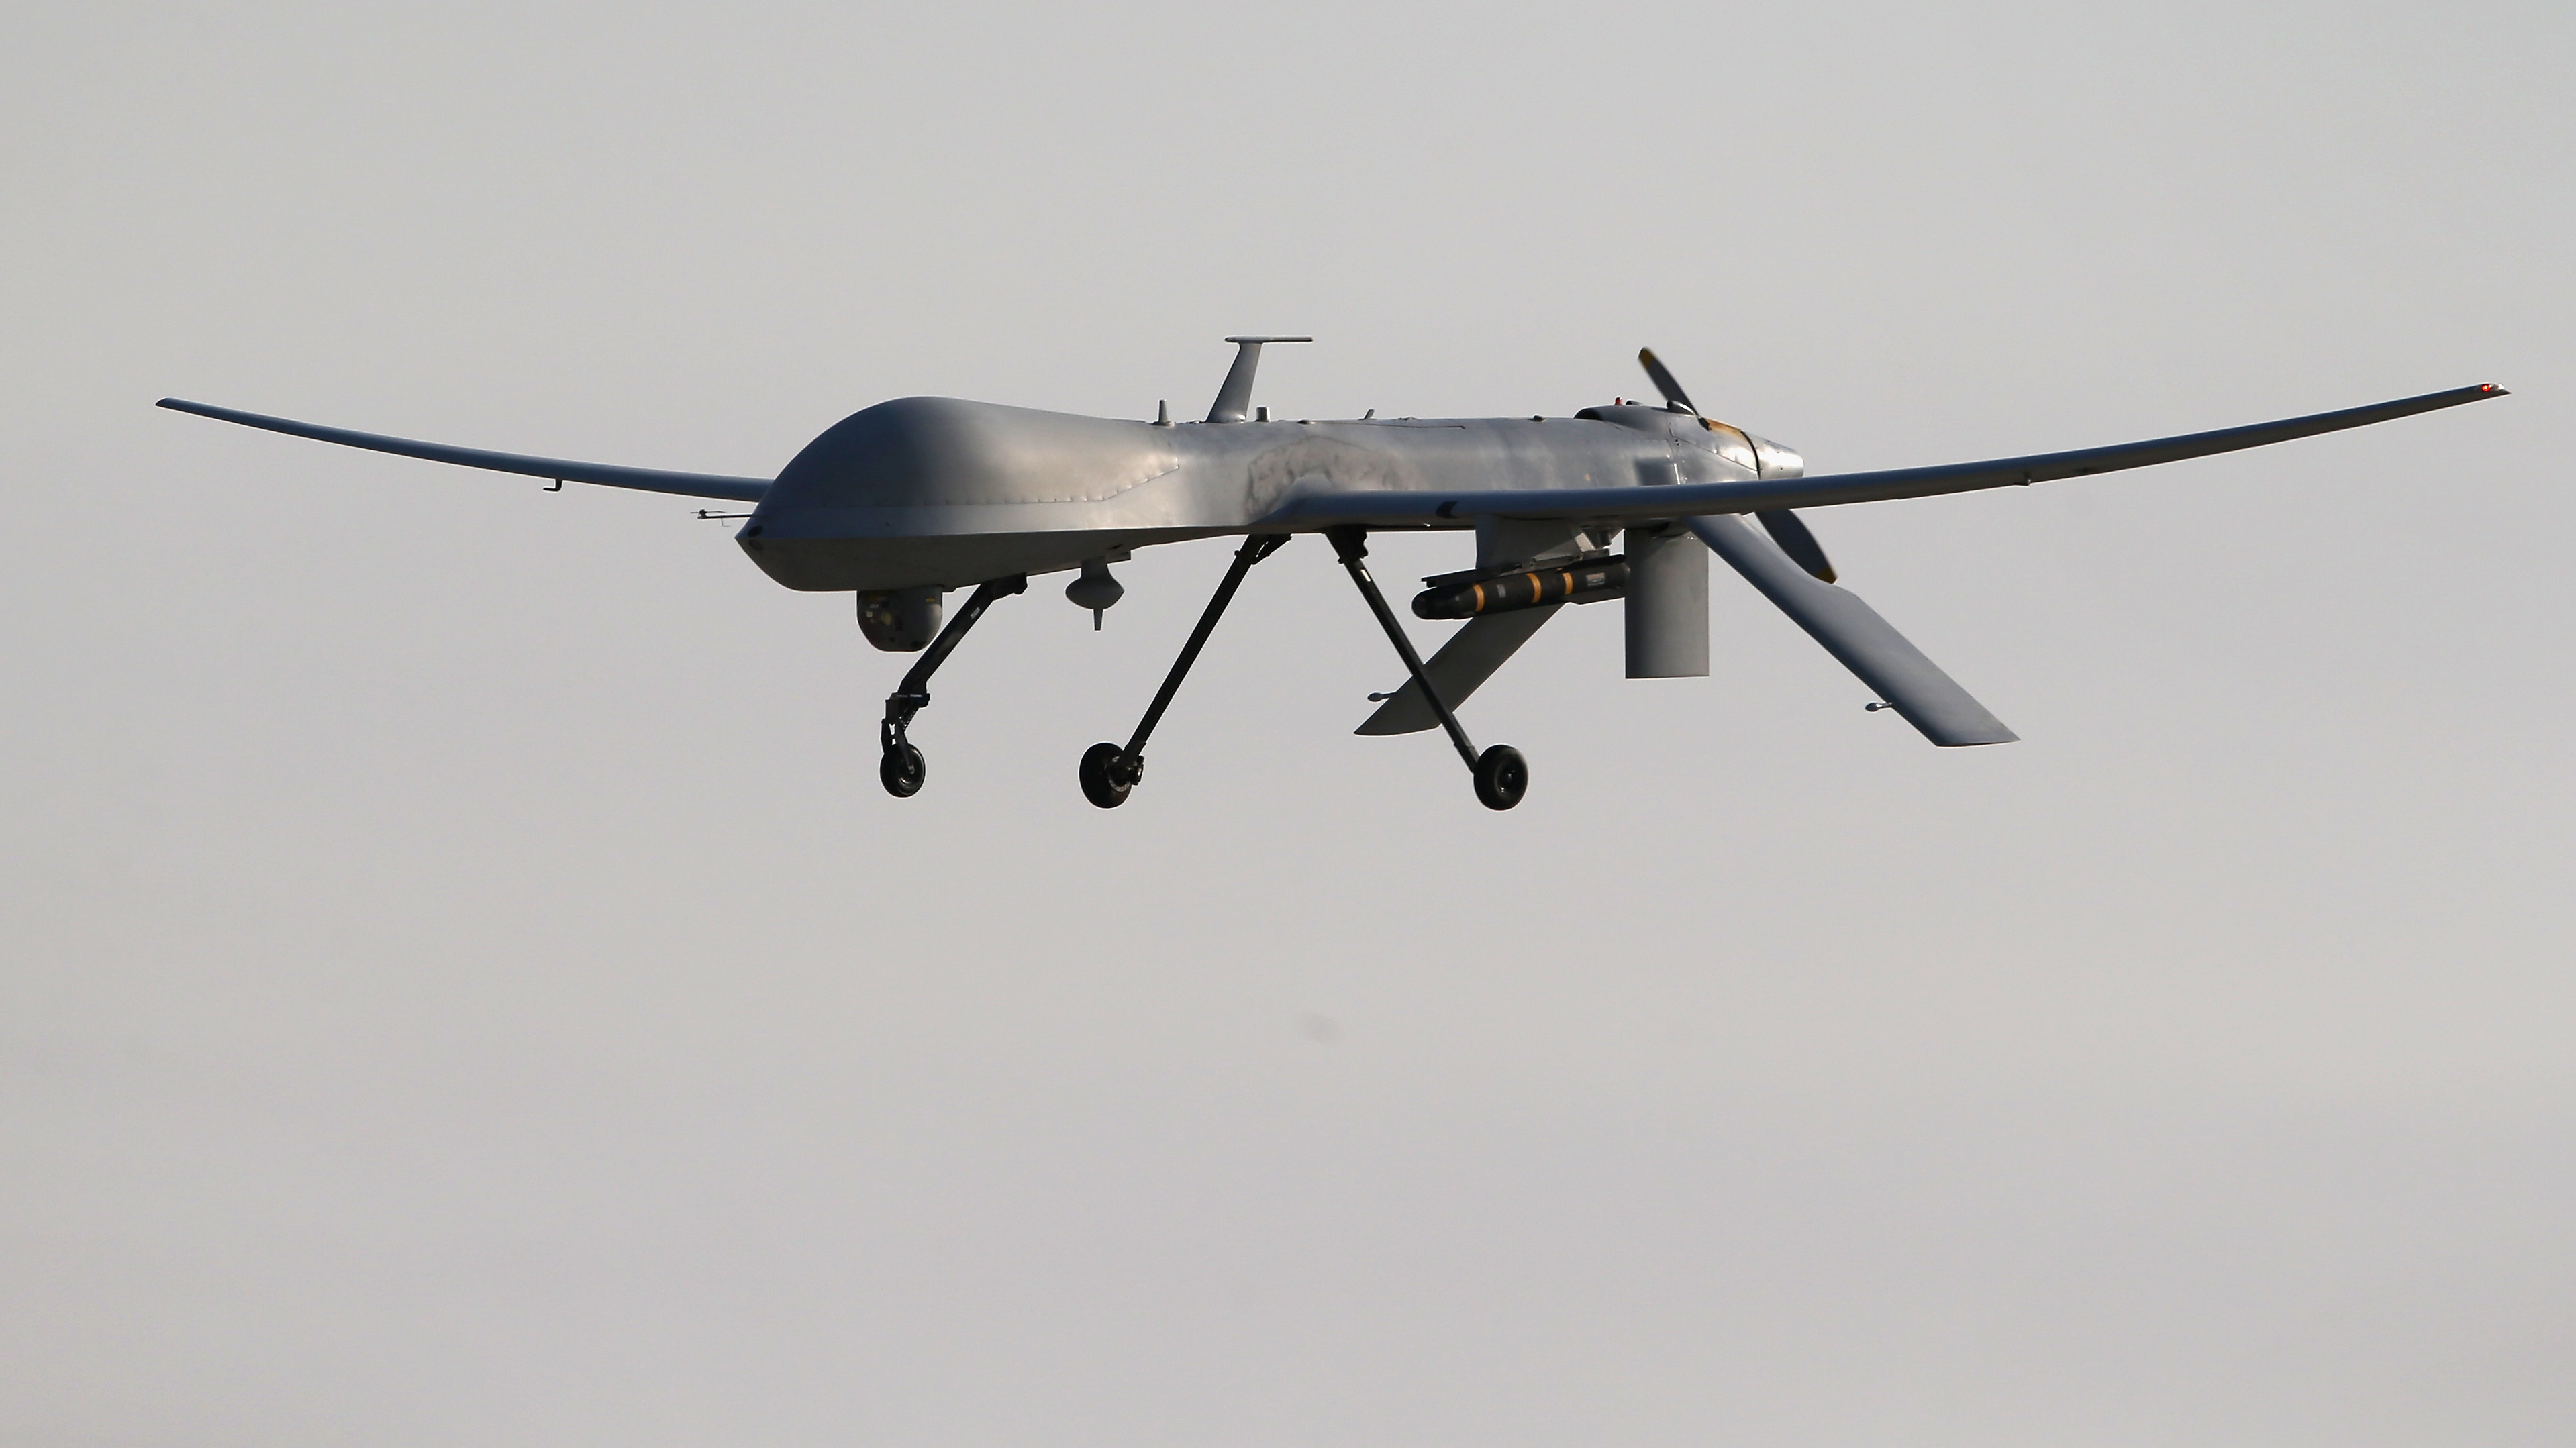 A U.S. Air Force MQ-1B Predator unmanned aerial vehicle, carrying a Hellfire missile, lands at a secret air base after flying a mission in the Persian Gulf region on Jan. 7. John Moore/Getty Images